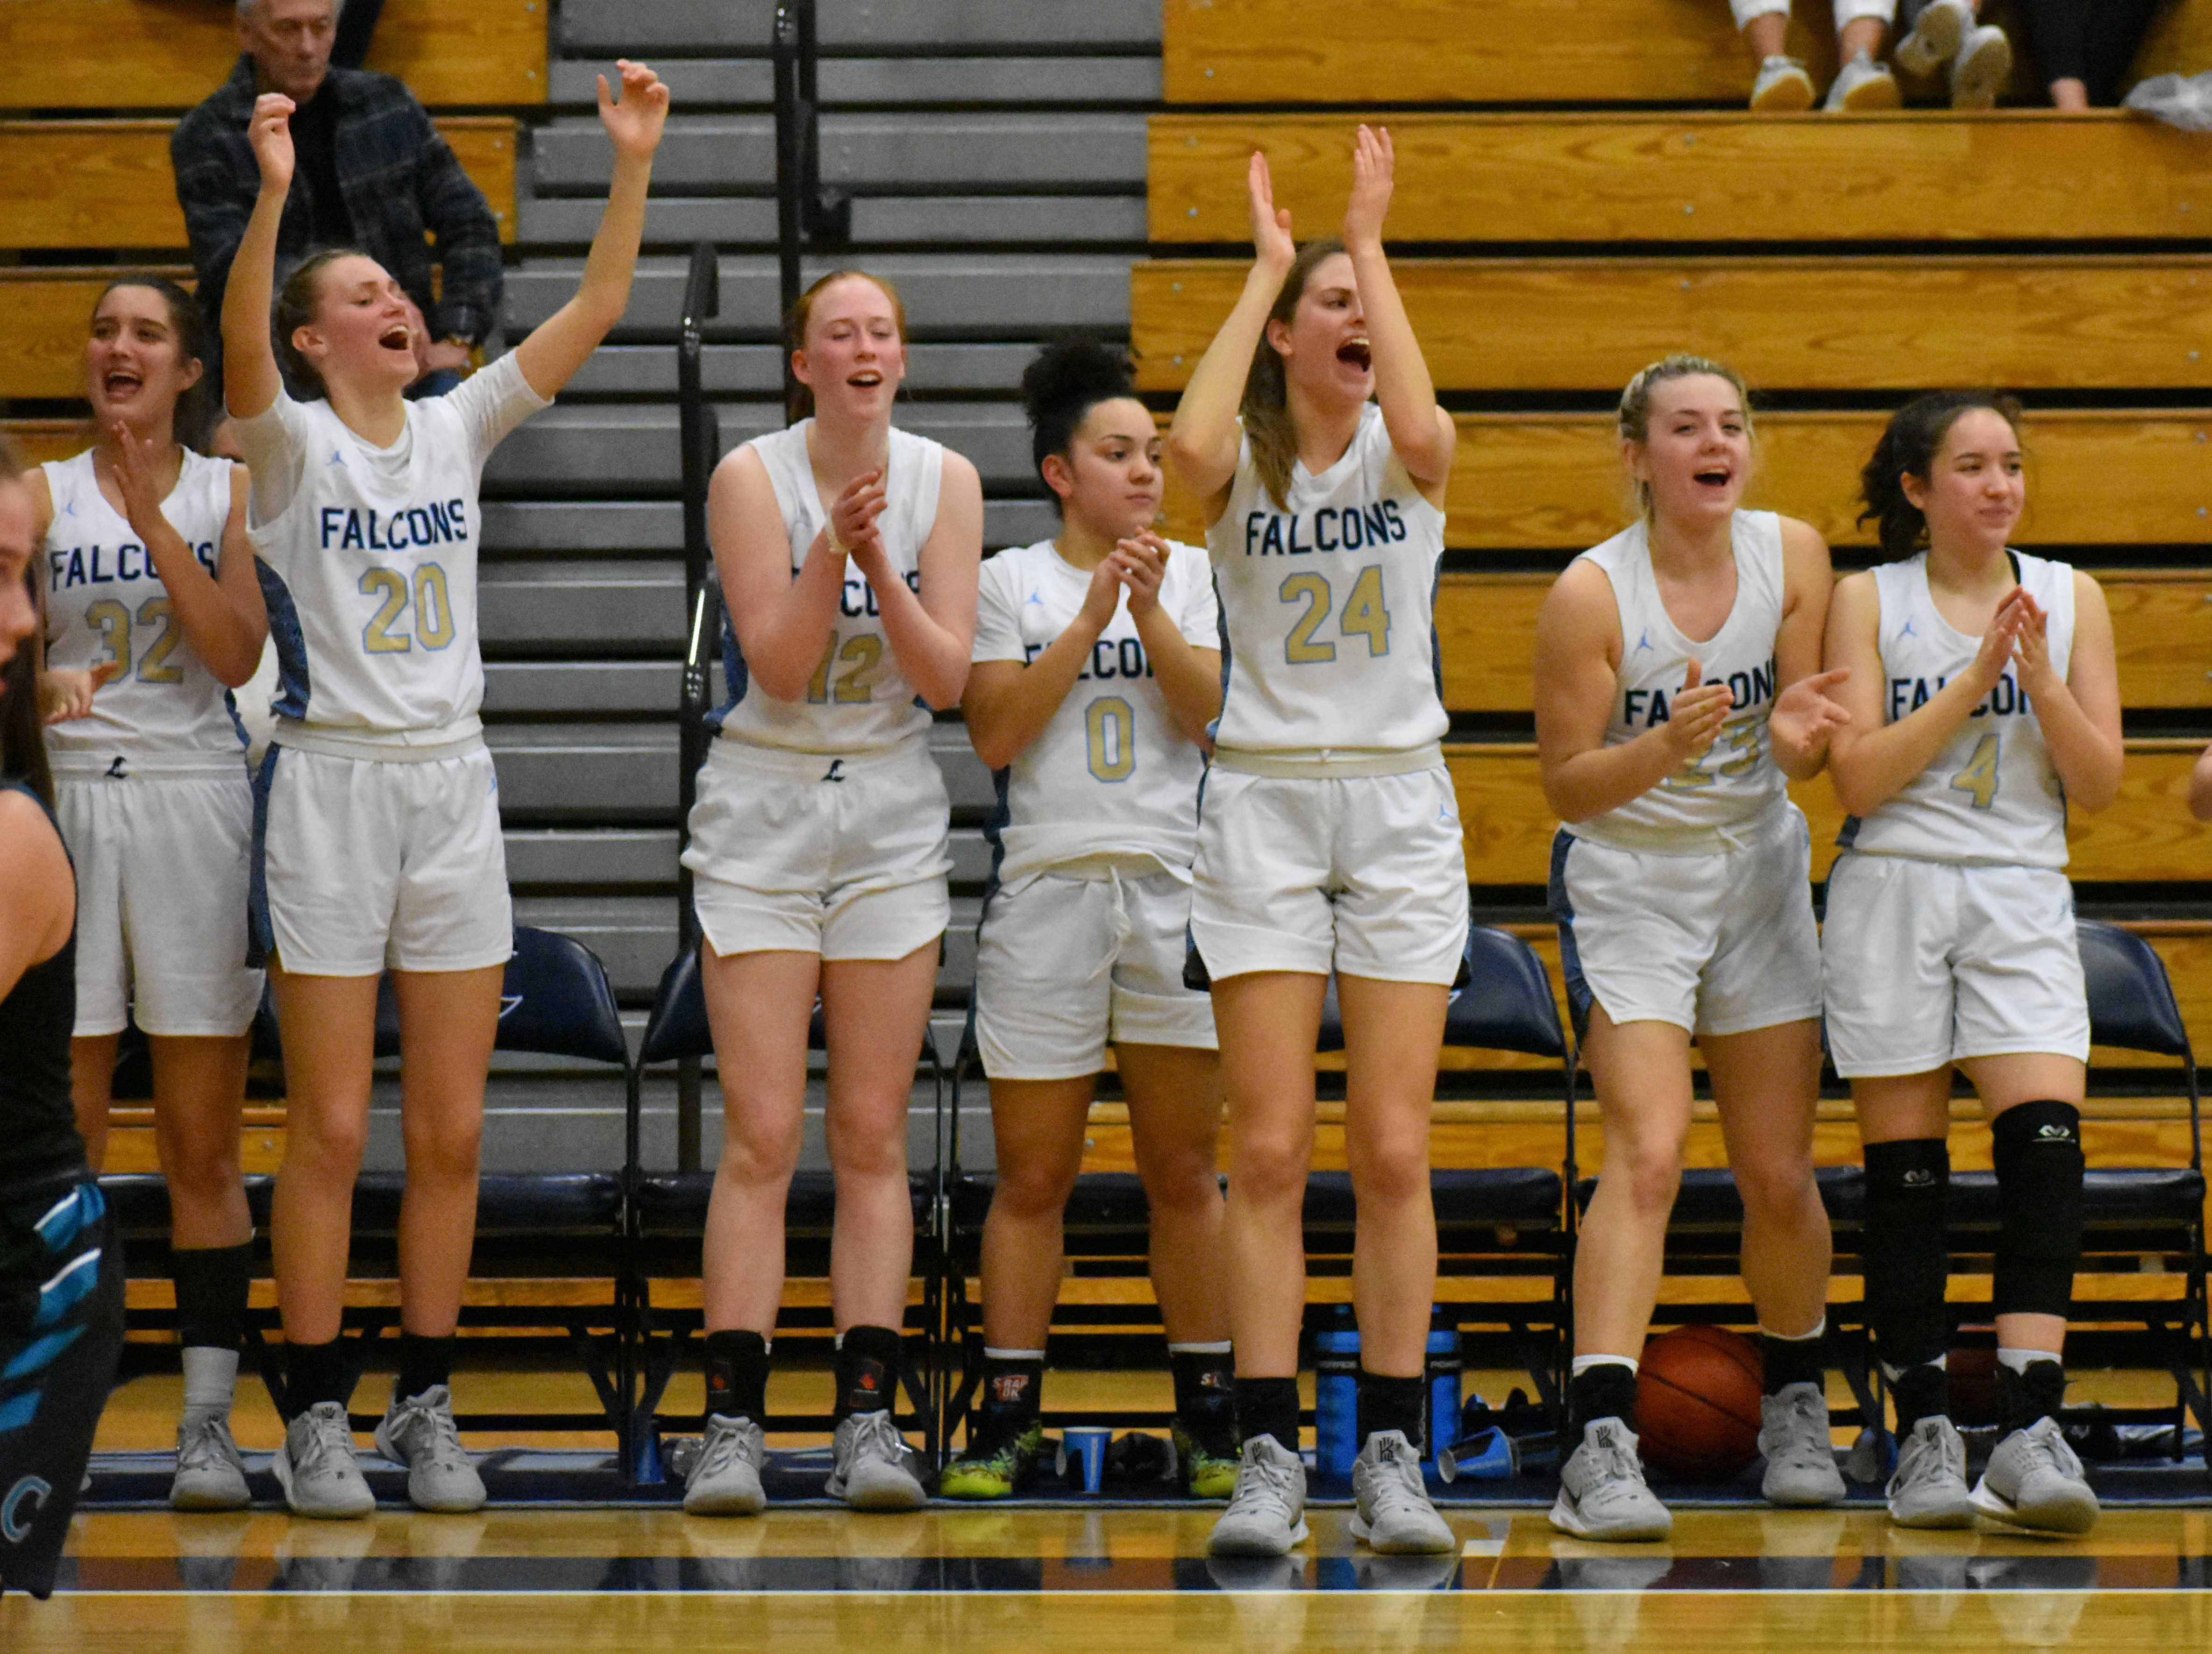 Liberty completed a perfect run through the Pacific Conference on Thursday. (Photo courtesy Liberty HS)